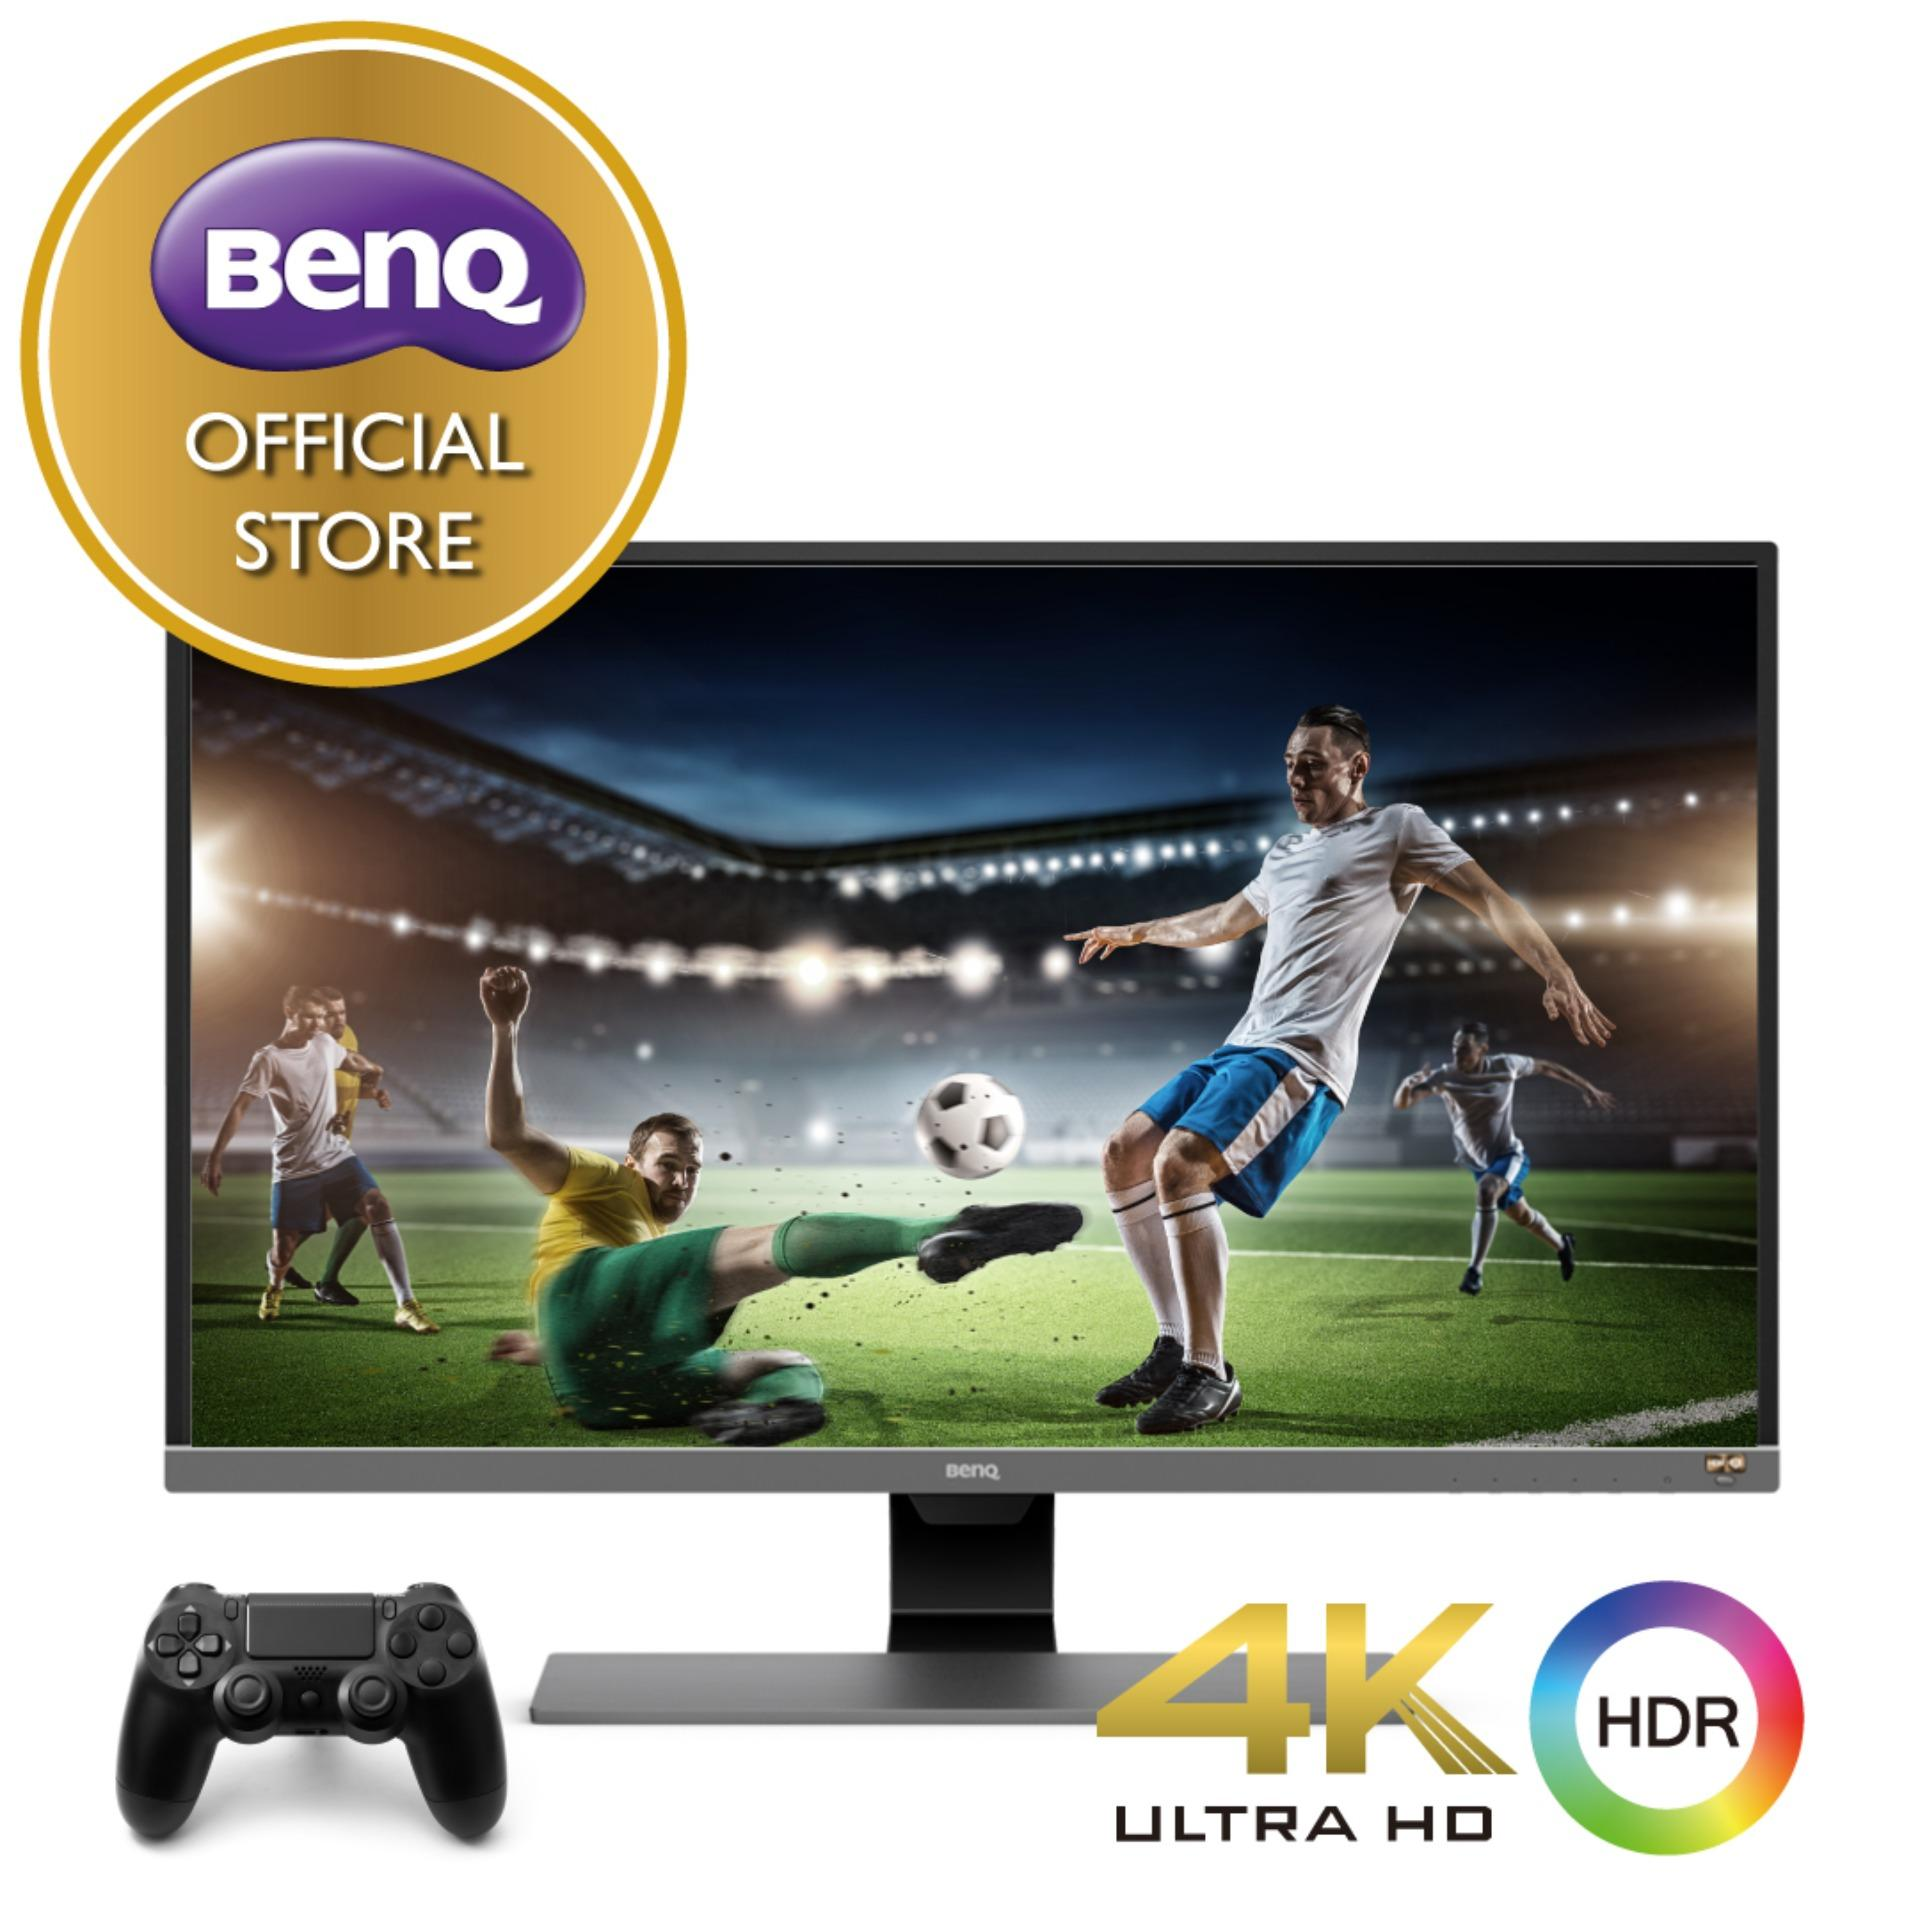 Latest Benq Monitors Products Enjoy Huge Discounts Lazada Sg Zowie Rl2755 27 Inch Console Gaming Monitor Ew3270u 4k Hdr 32 Best For Ps4 Pro Xbox One X